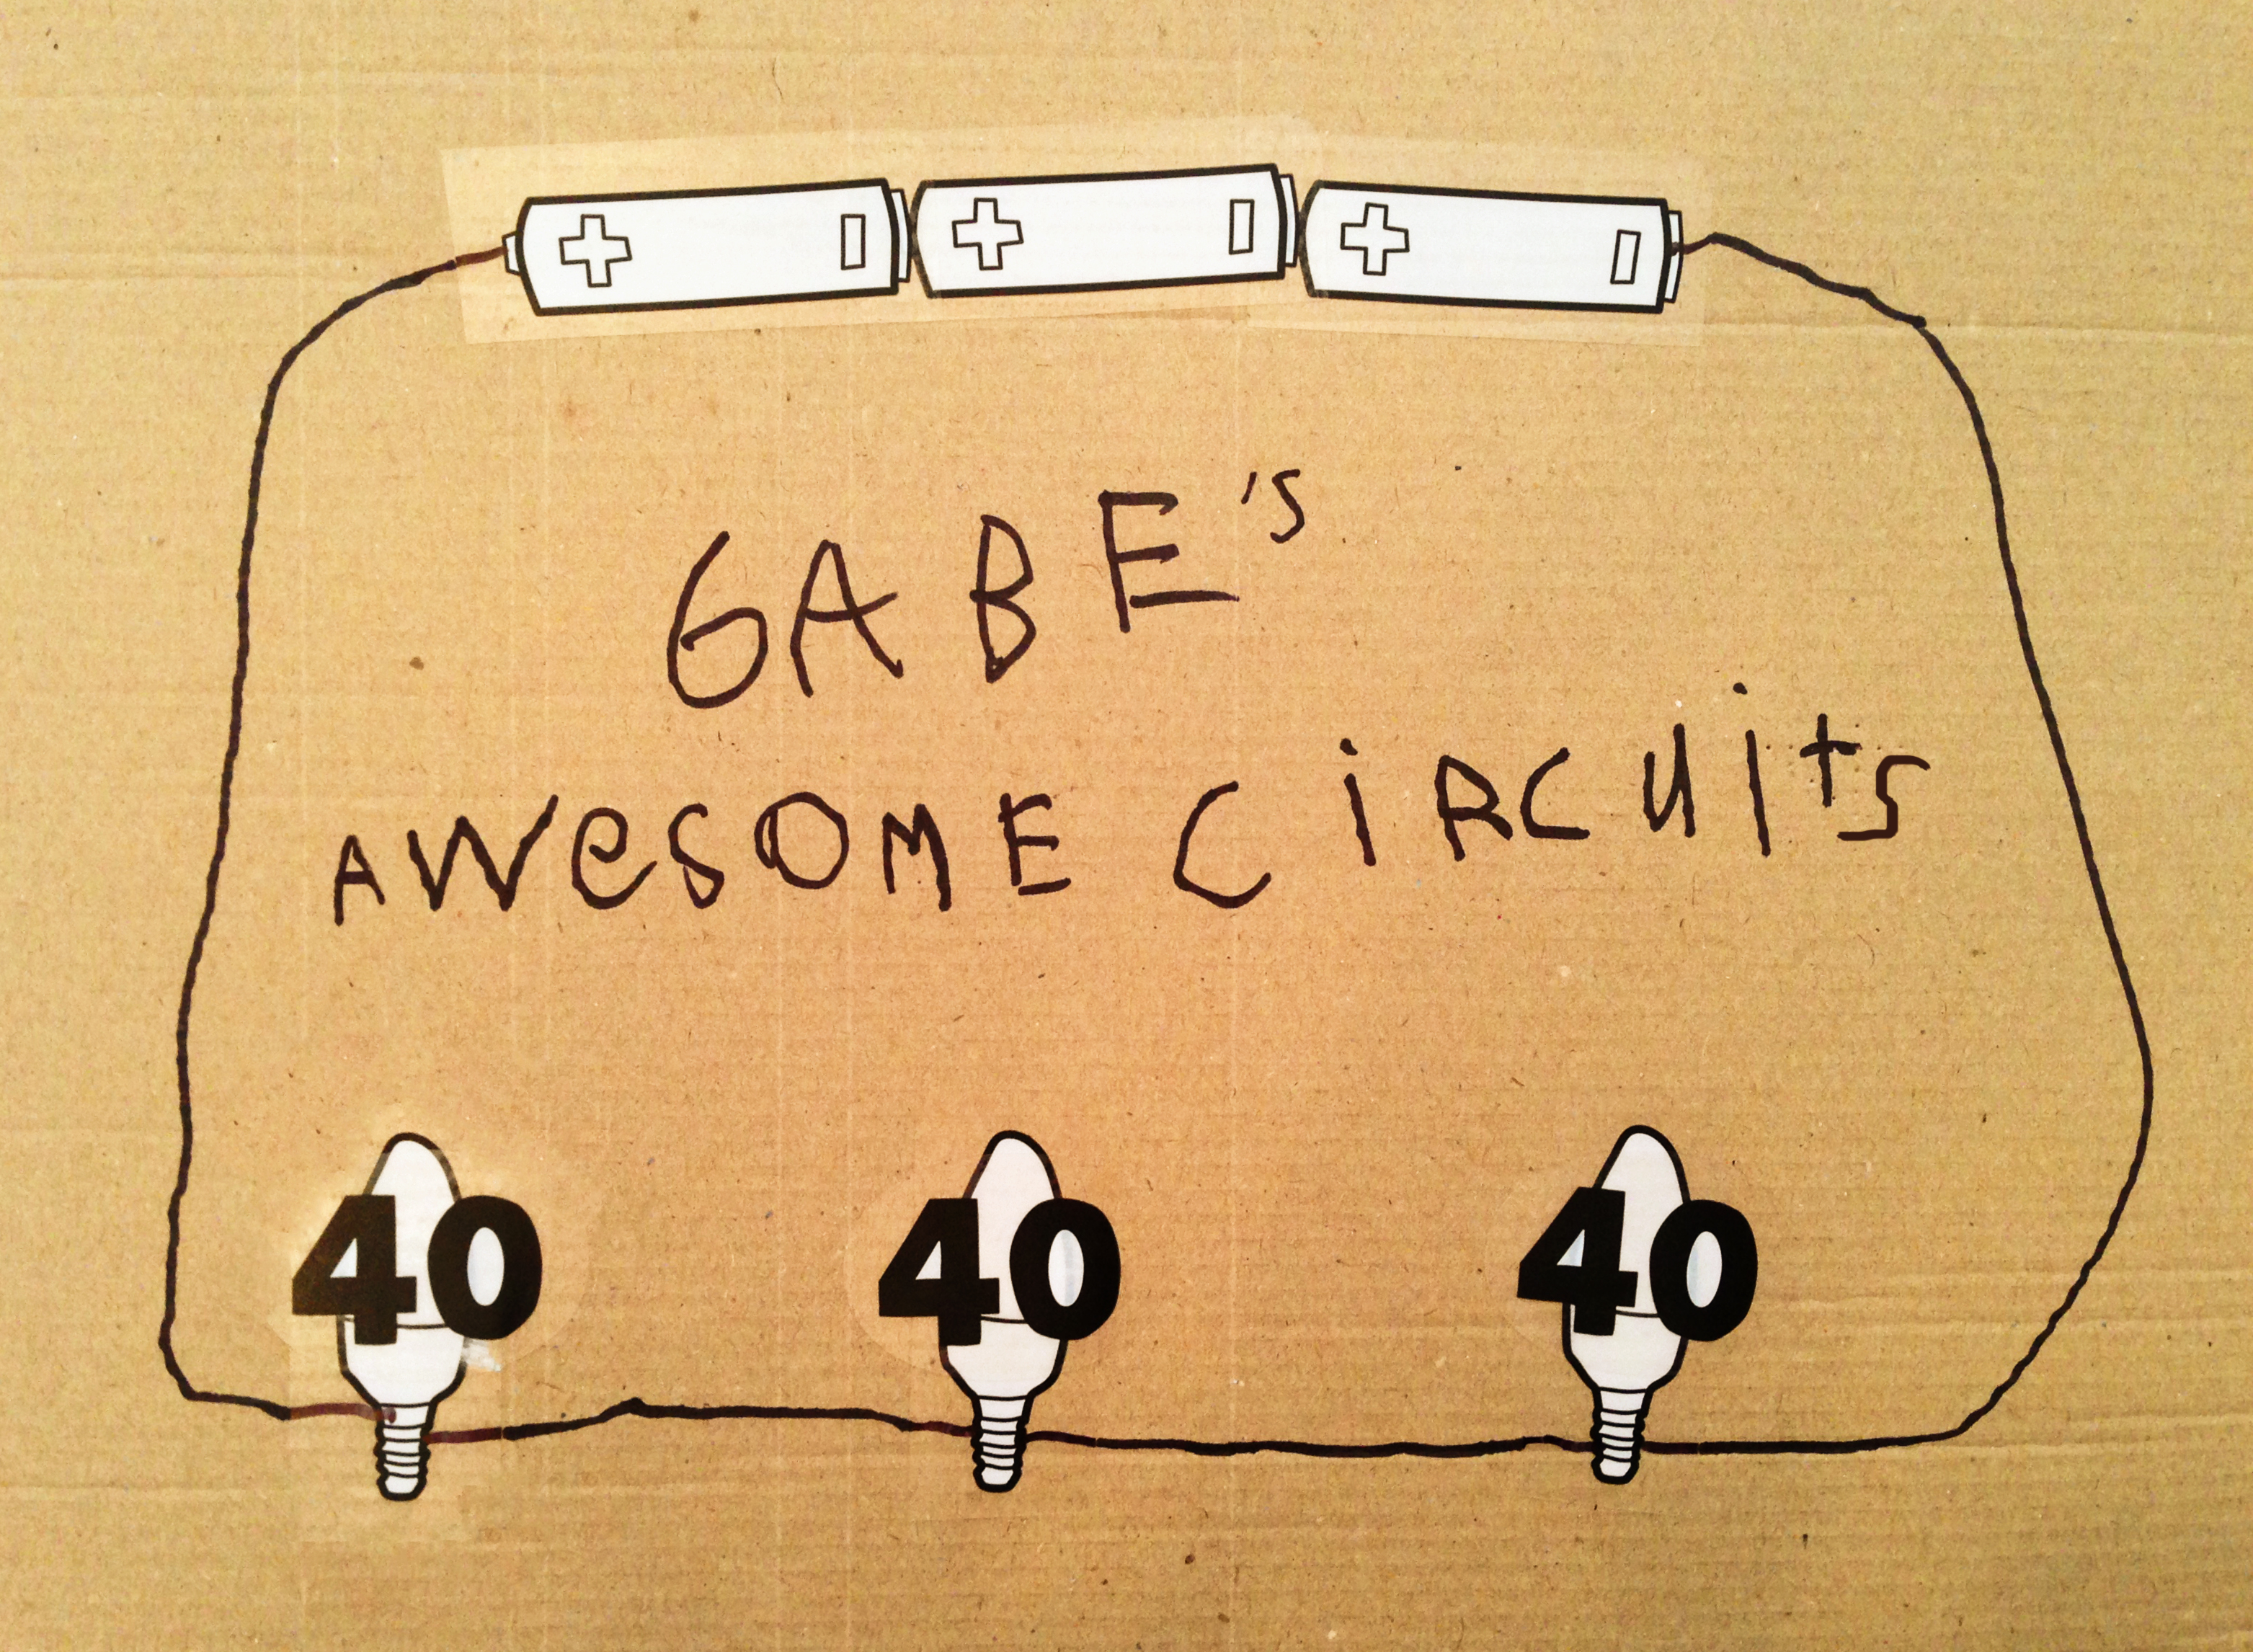 Awesome Electricity And Simple Circuits Taught By Grace Voltage Divider Circuit Img 1704 Copy2